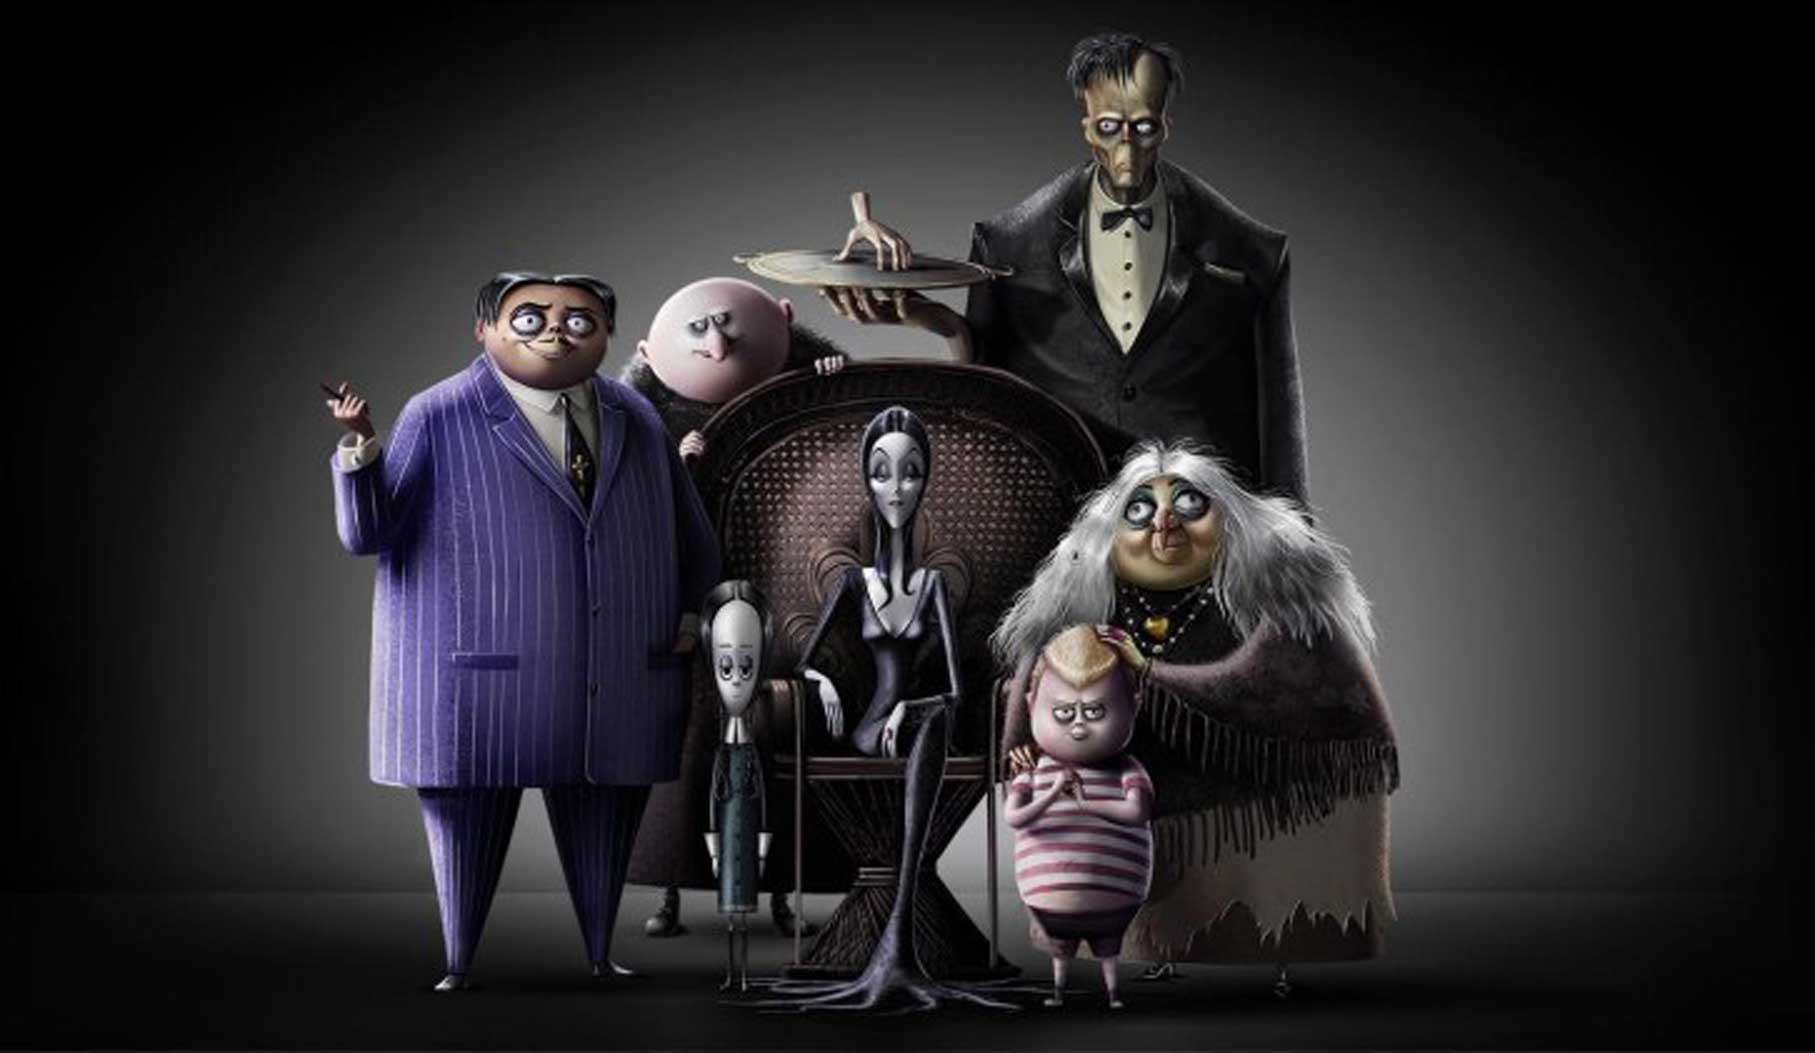 Mysterious And Spooky: The New Animated Addams Family Movie Creeps Us Out